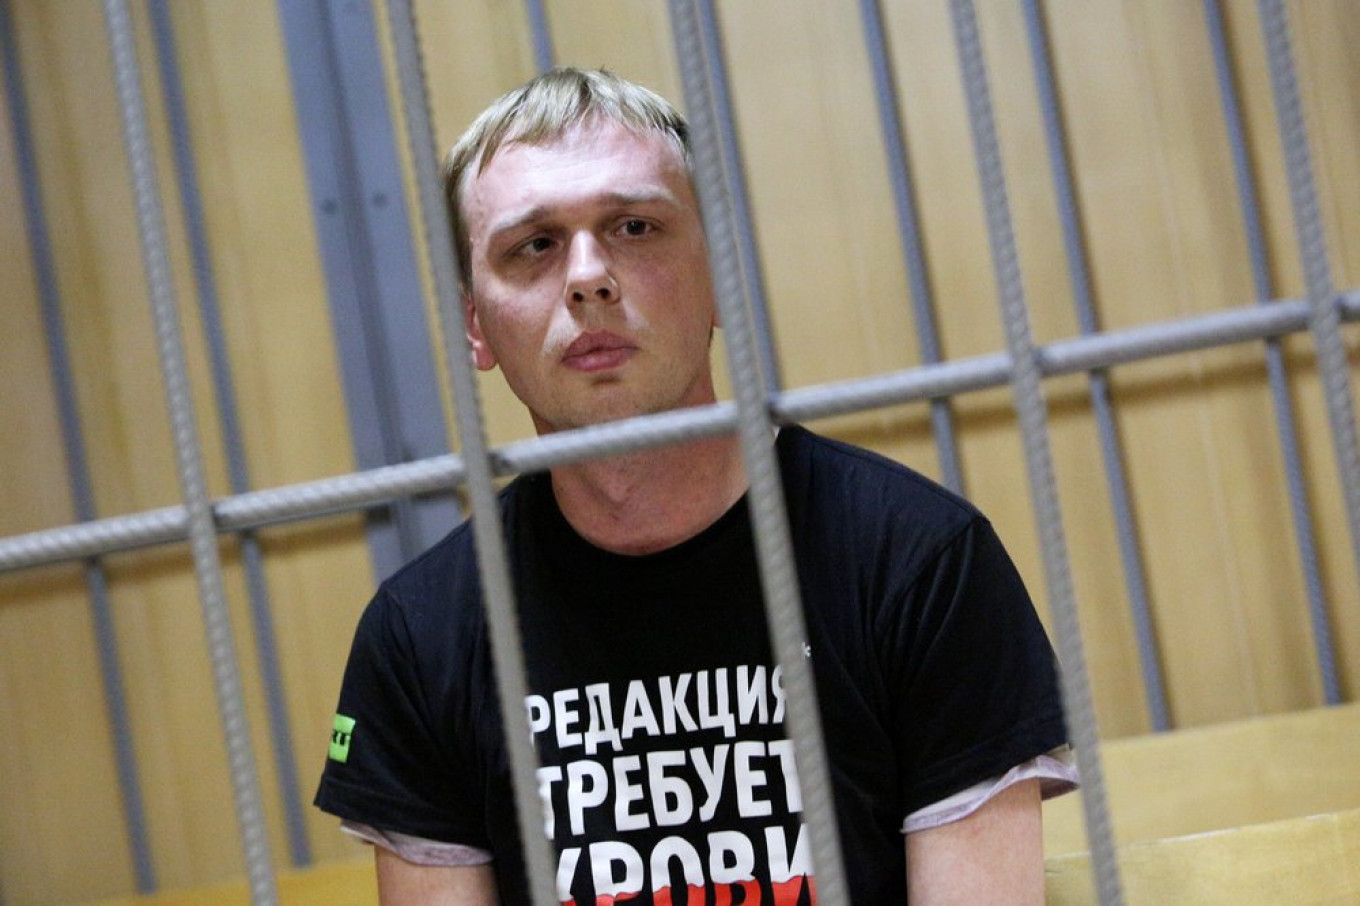 Ivan Golunov, an investigative journalist, was released from prison after a massive public outcry. Kirill Zykov / Moskva News Agency